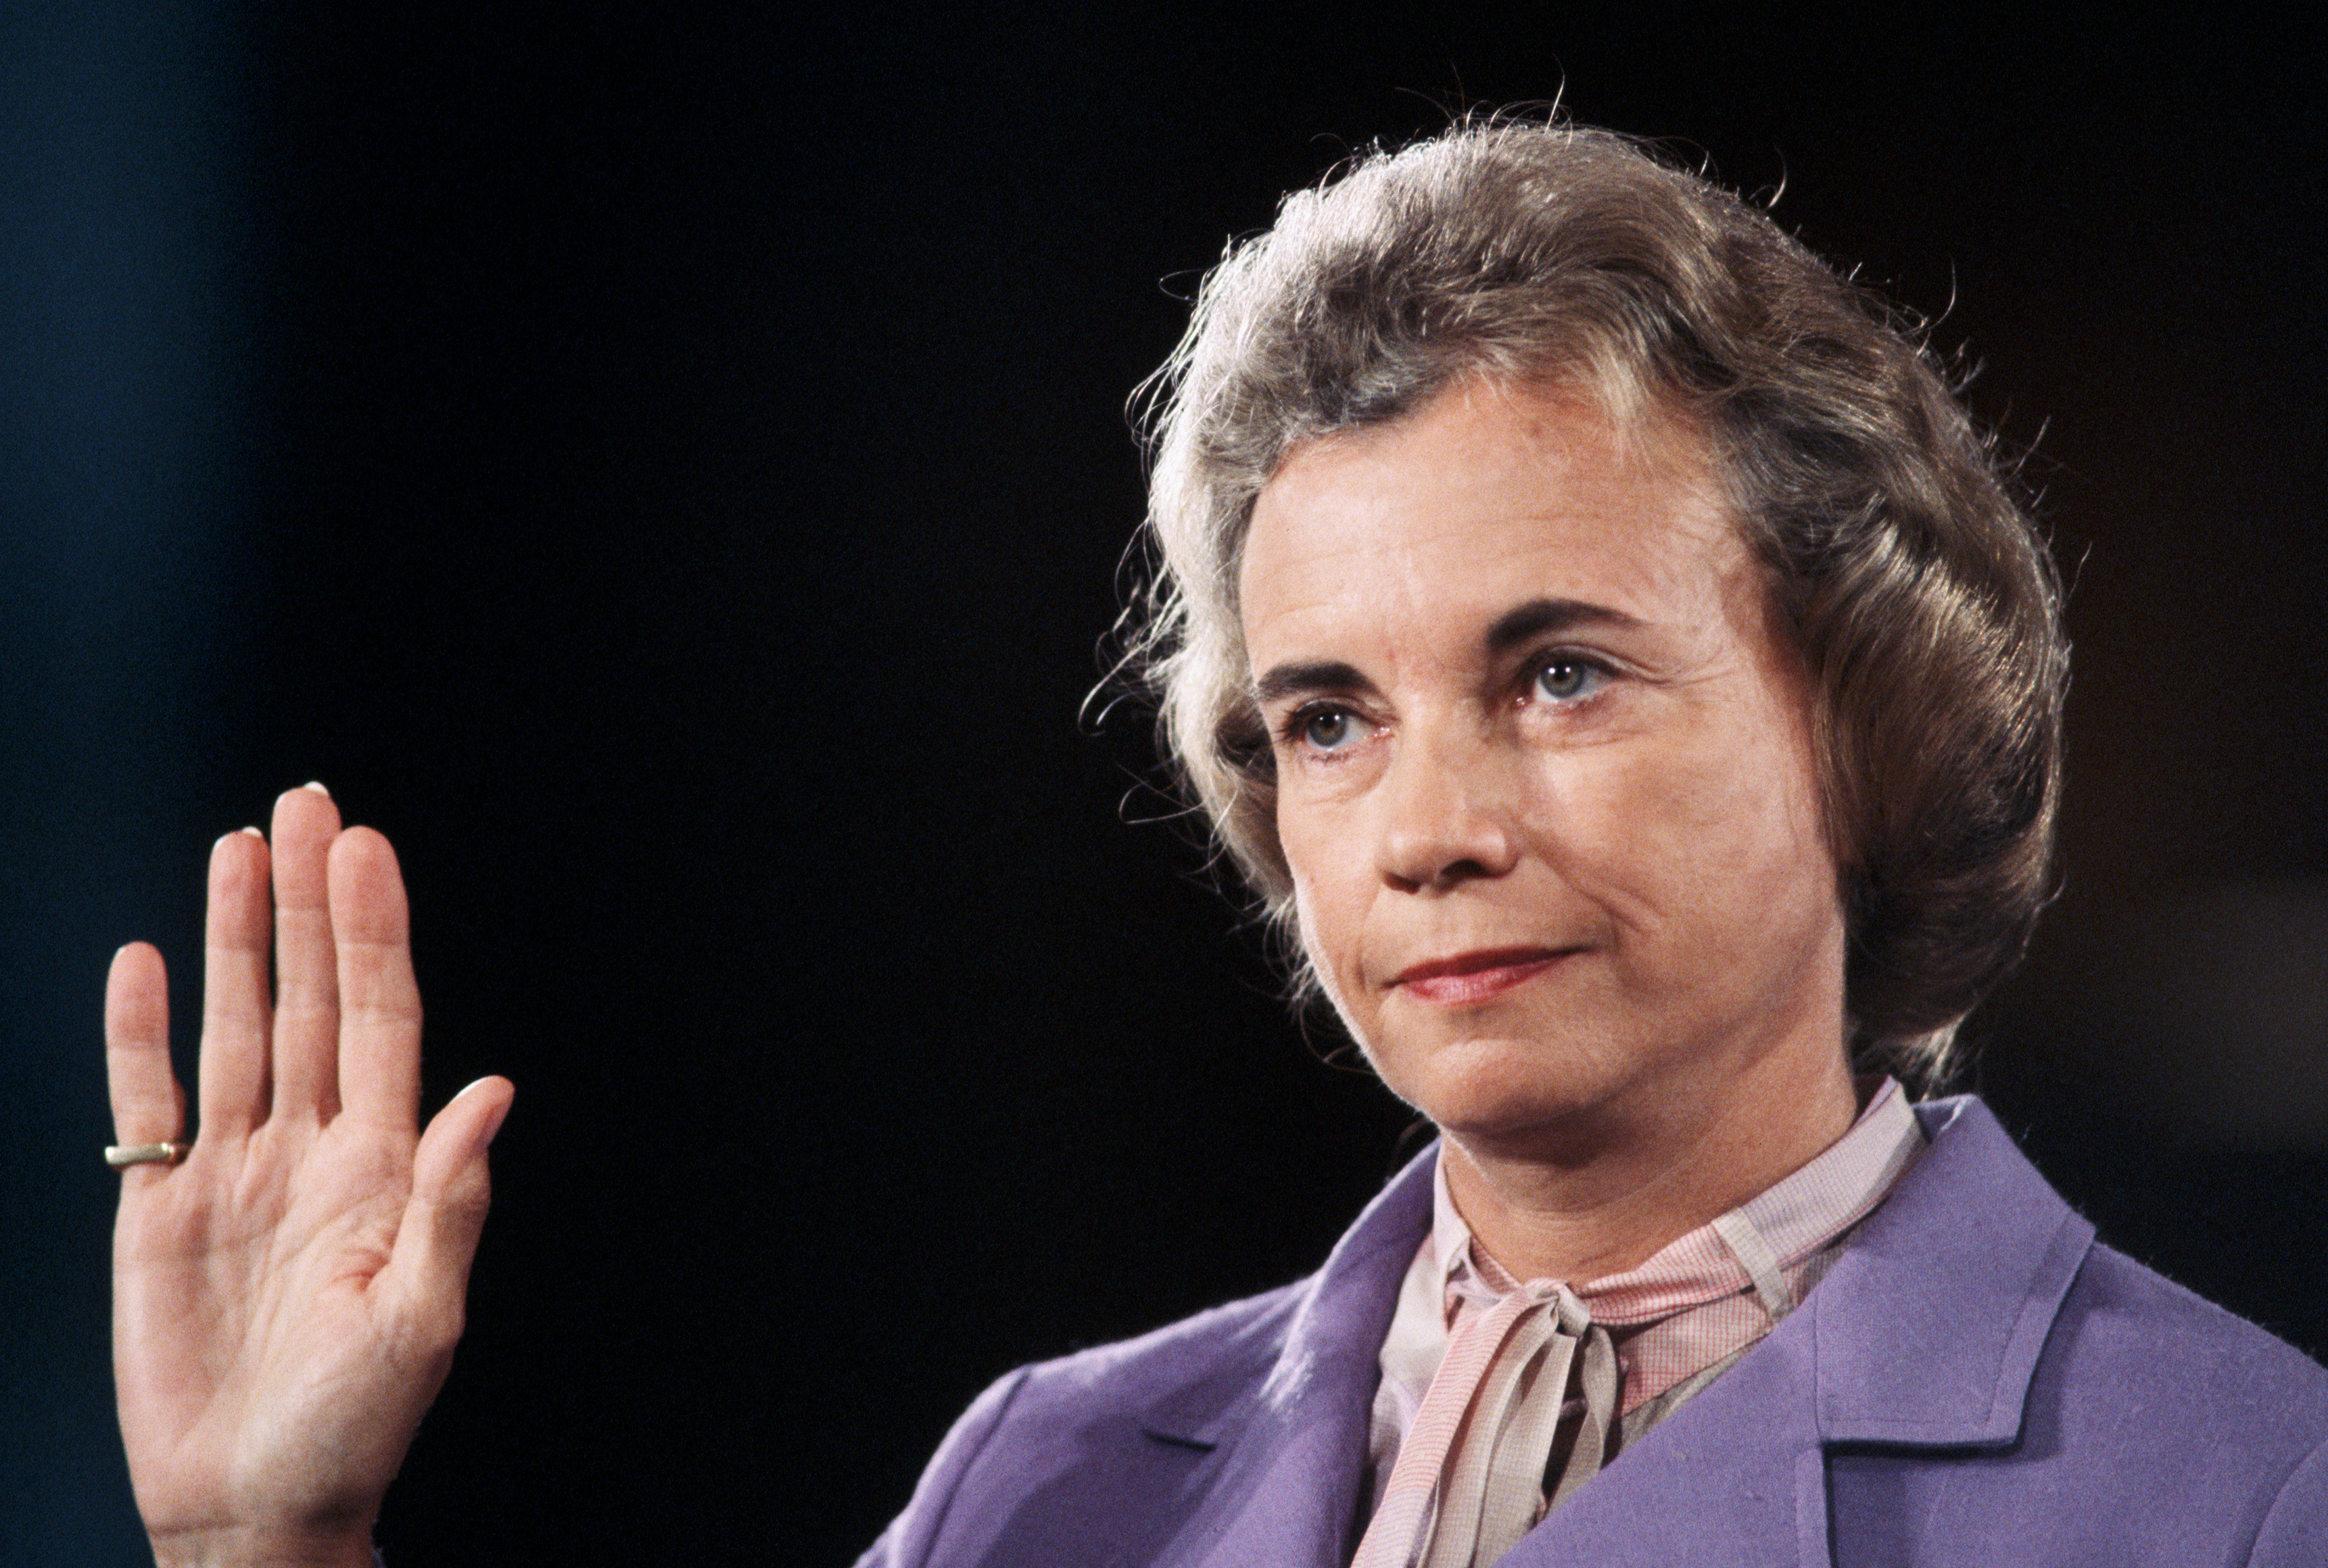 Sandra Day O'Connor, first woman on U.S. Supreme Court, has dementia